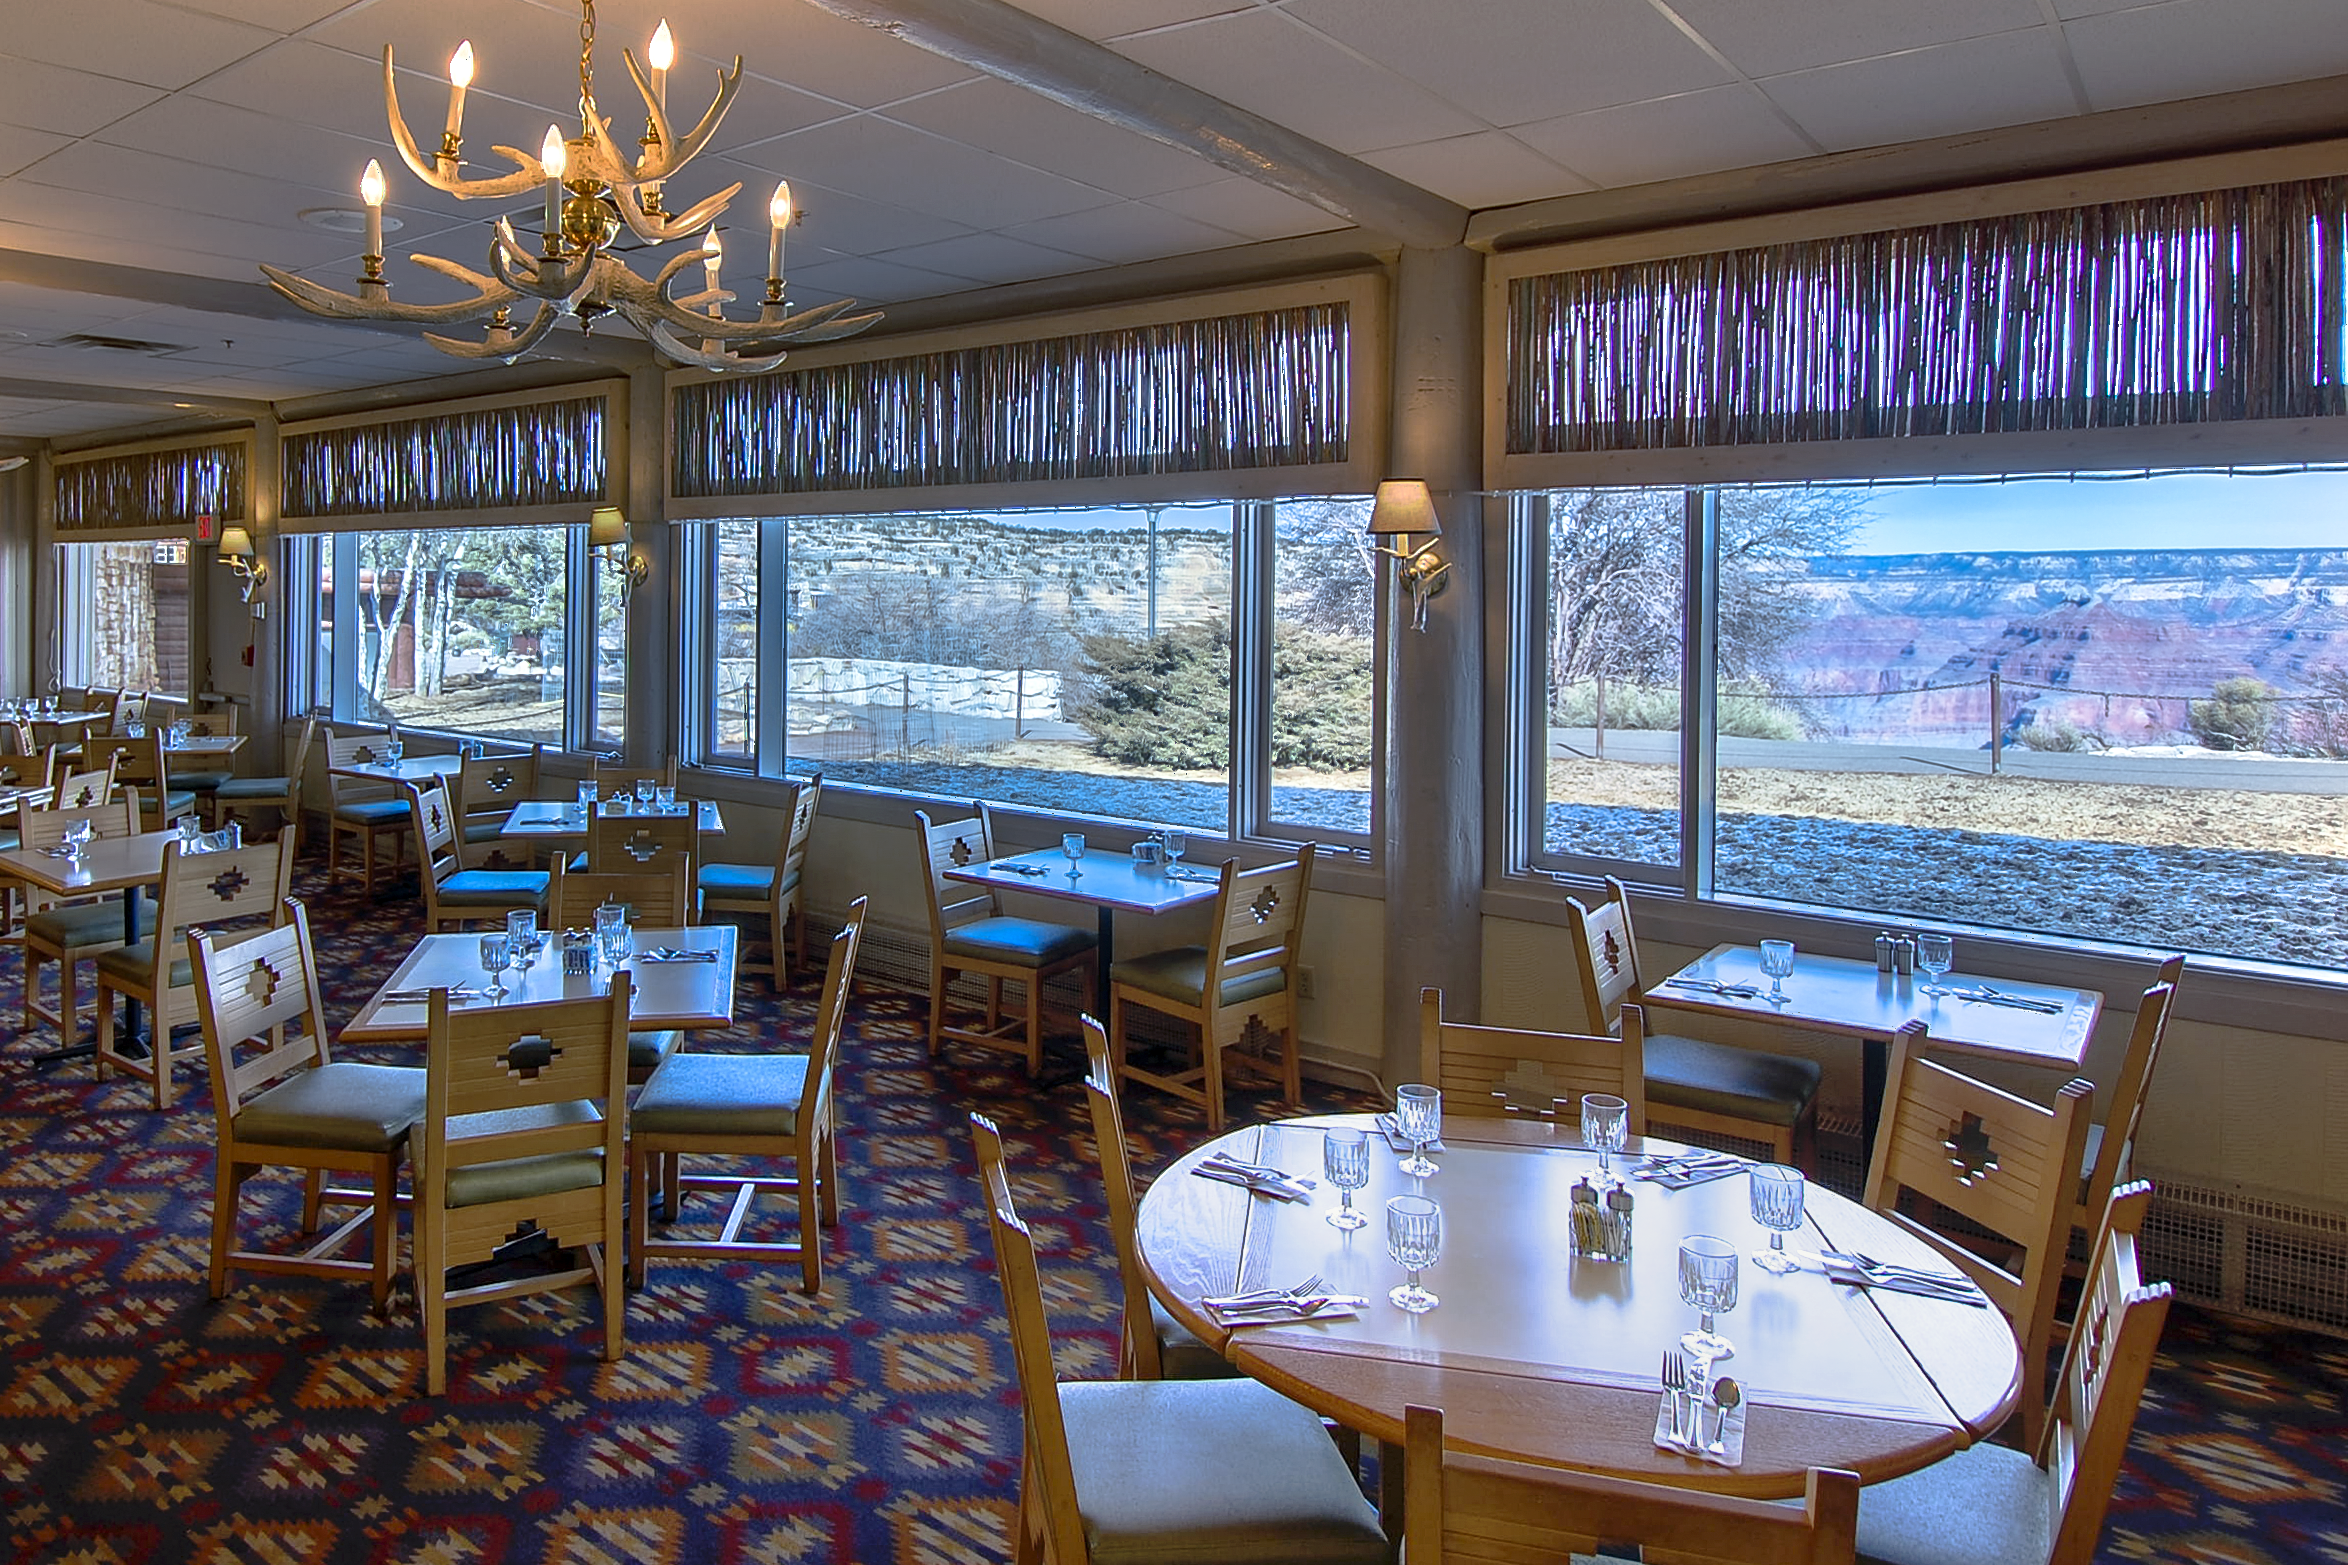 Grand Canyon Lodge Dining Room New Catering & Dining Services  Grand Canyon National Park Lodges 2017